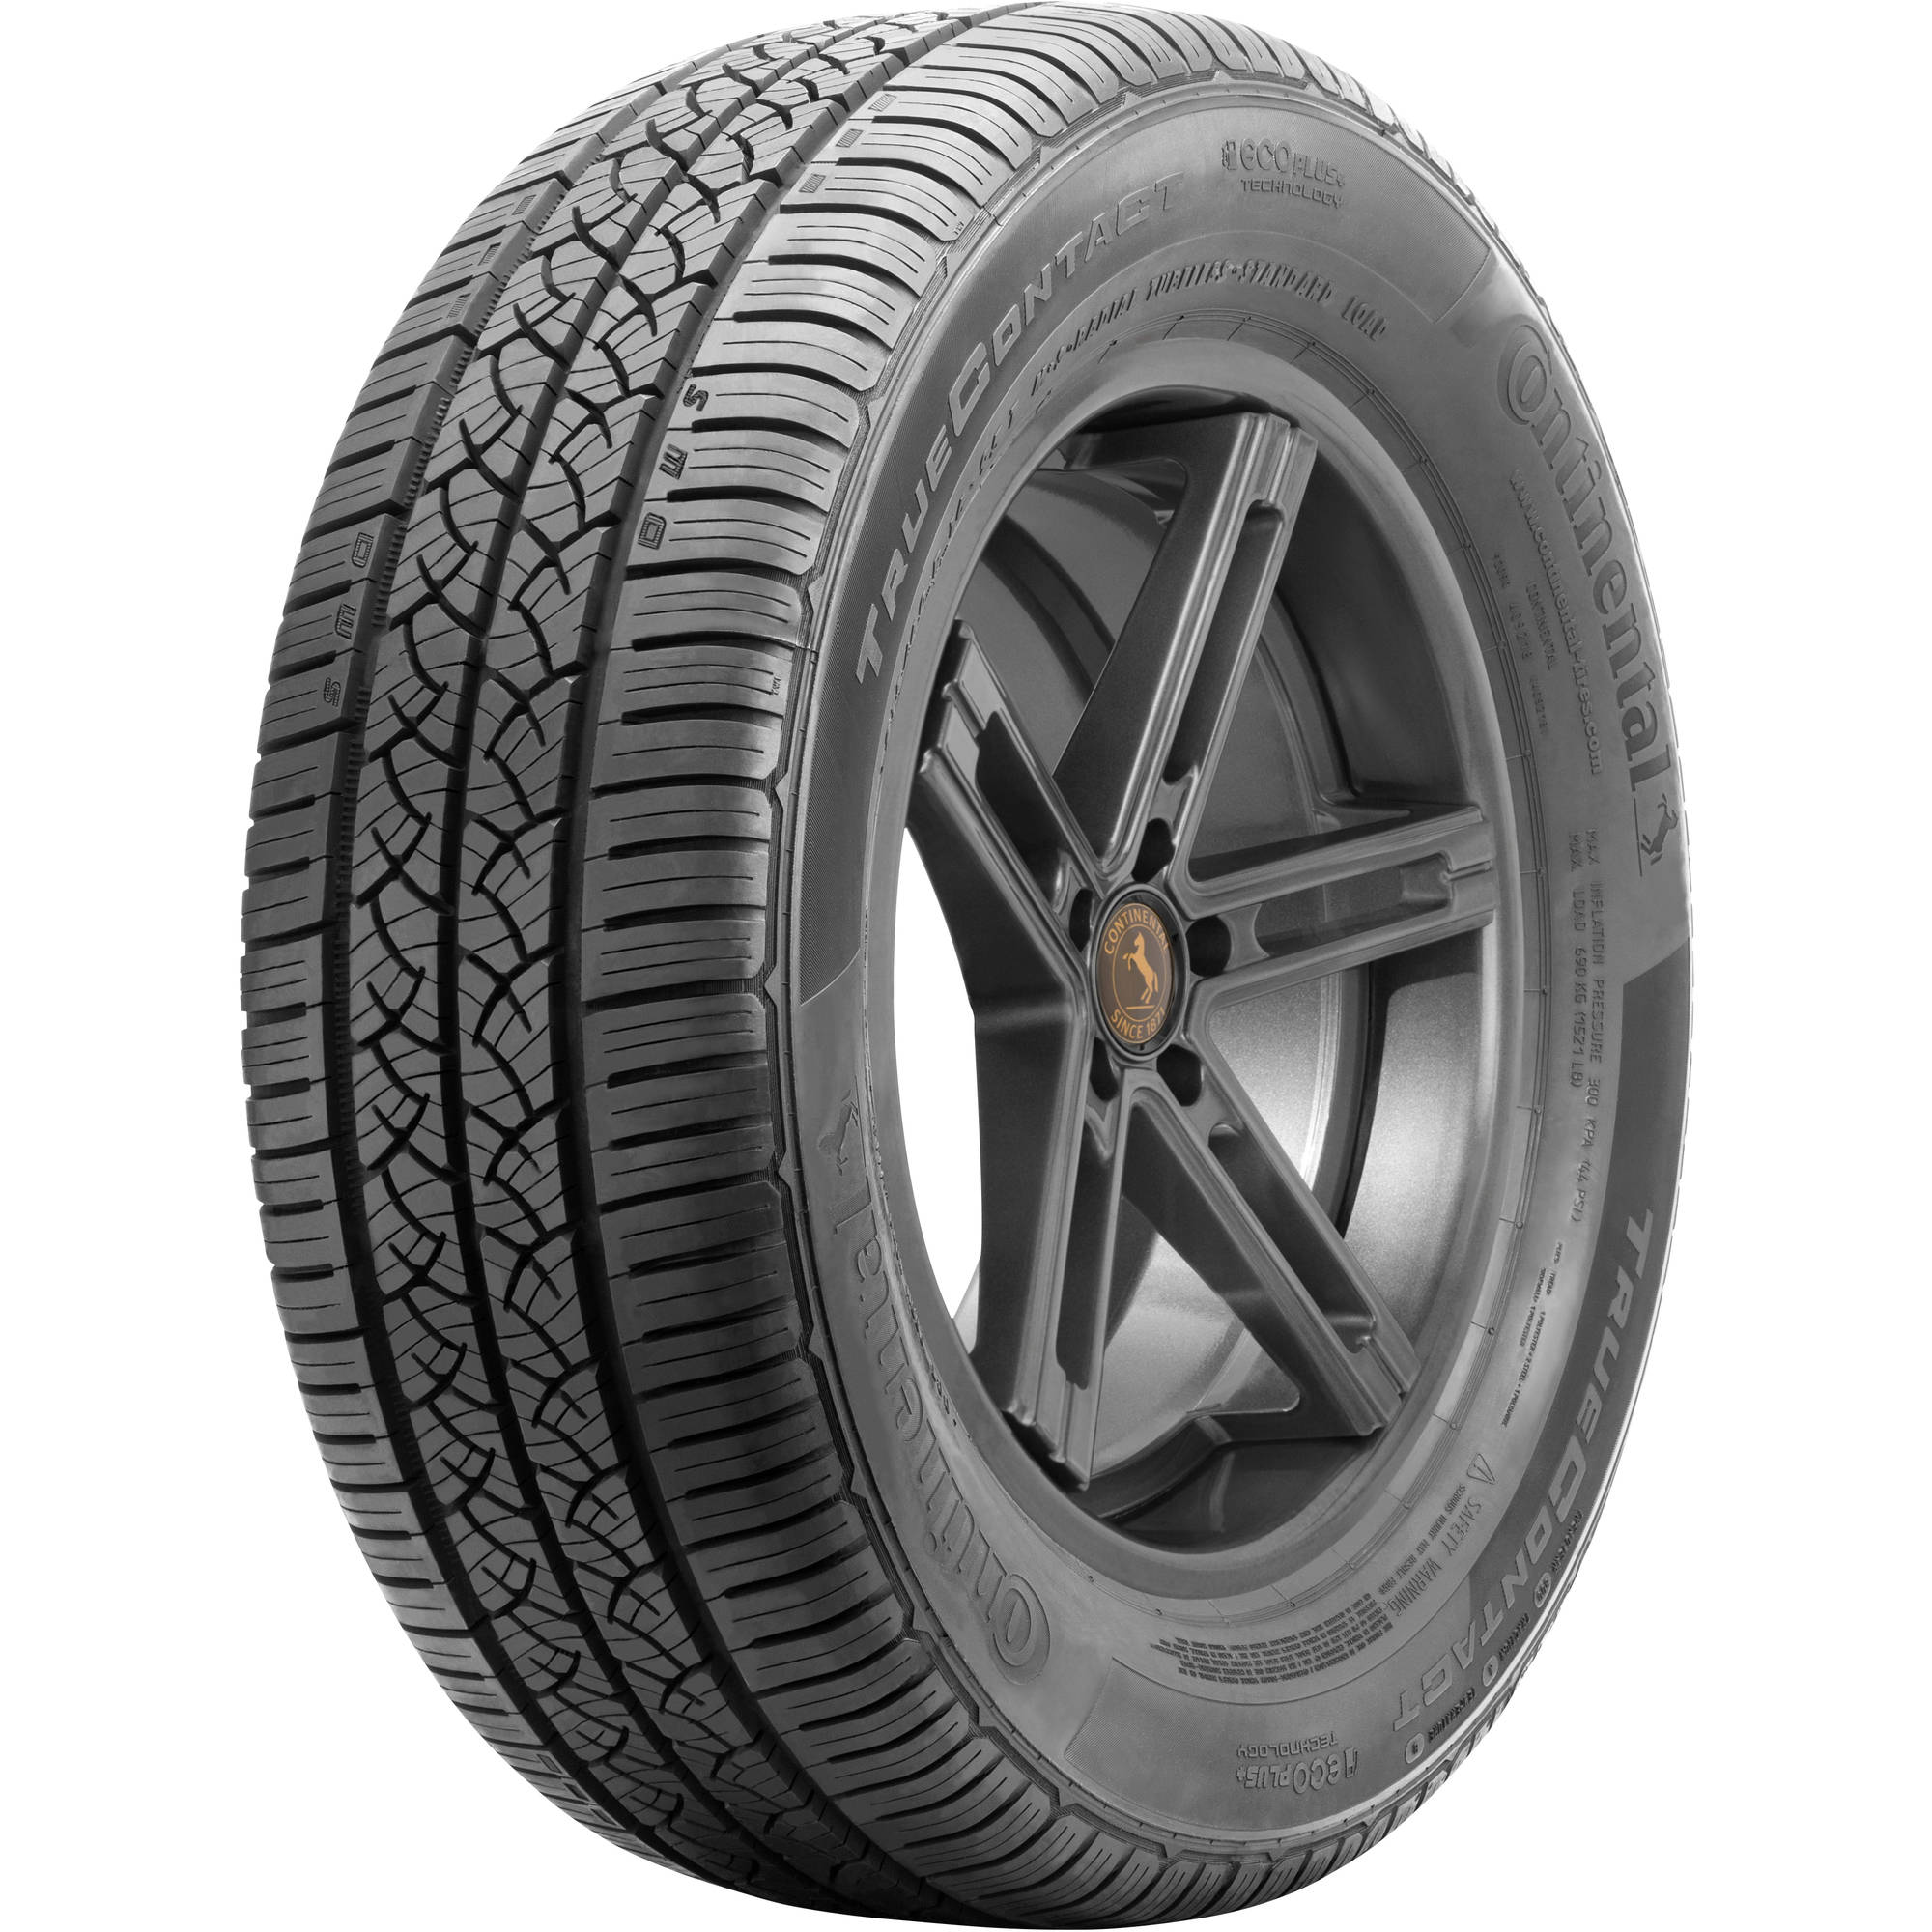 P235//65r16 Tires 2356516 235 65 16 1 New Goodyear Assurance Authority